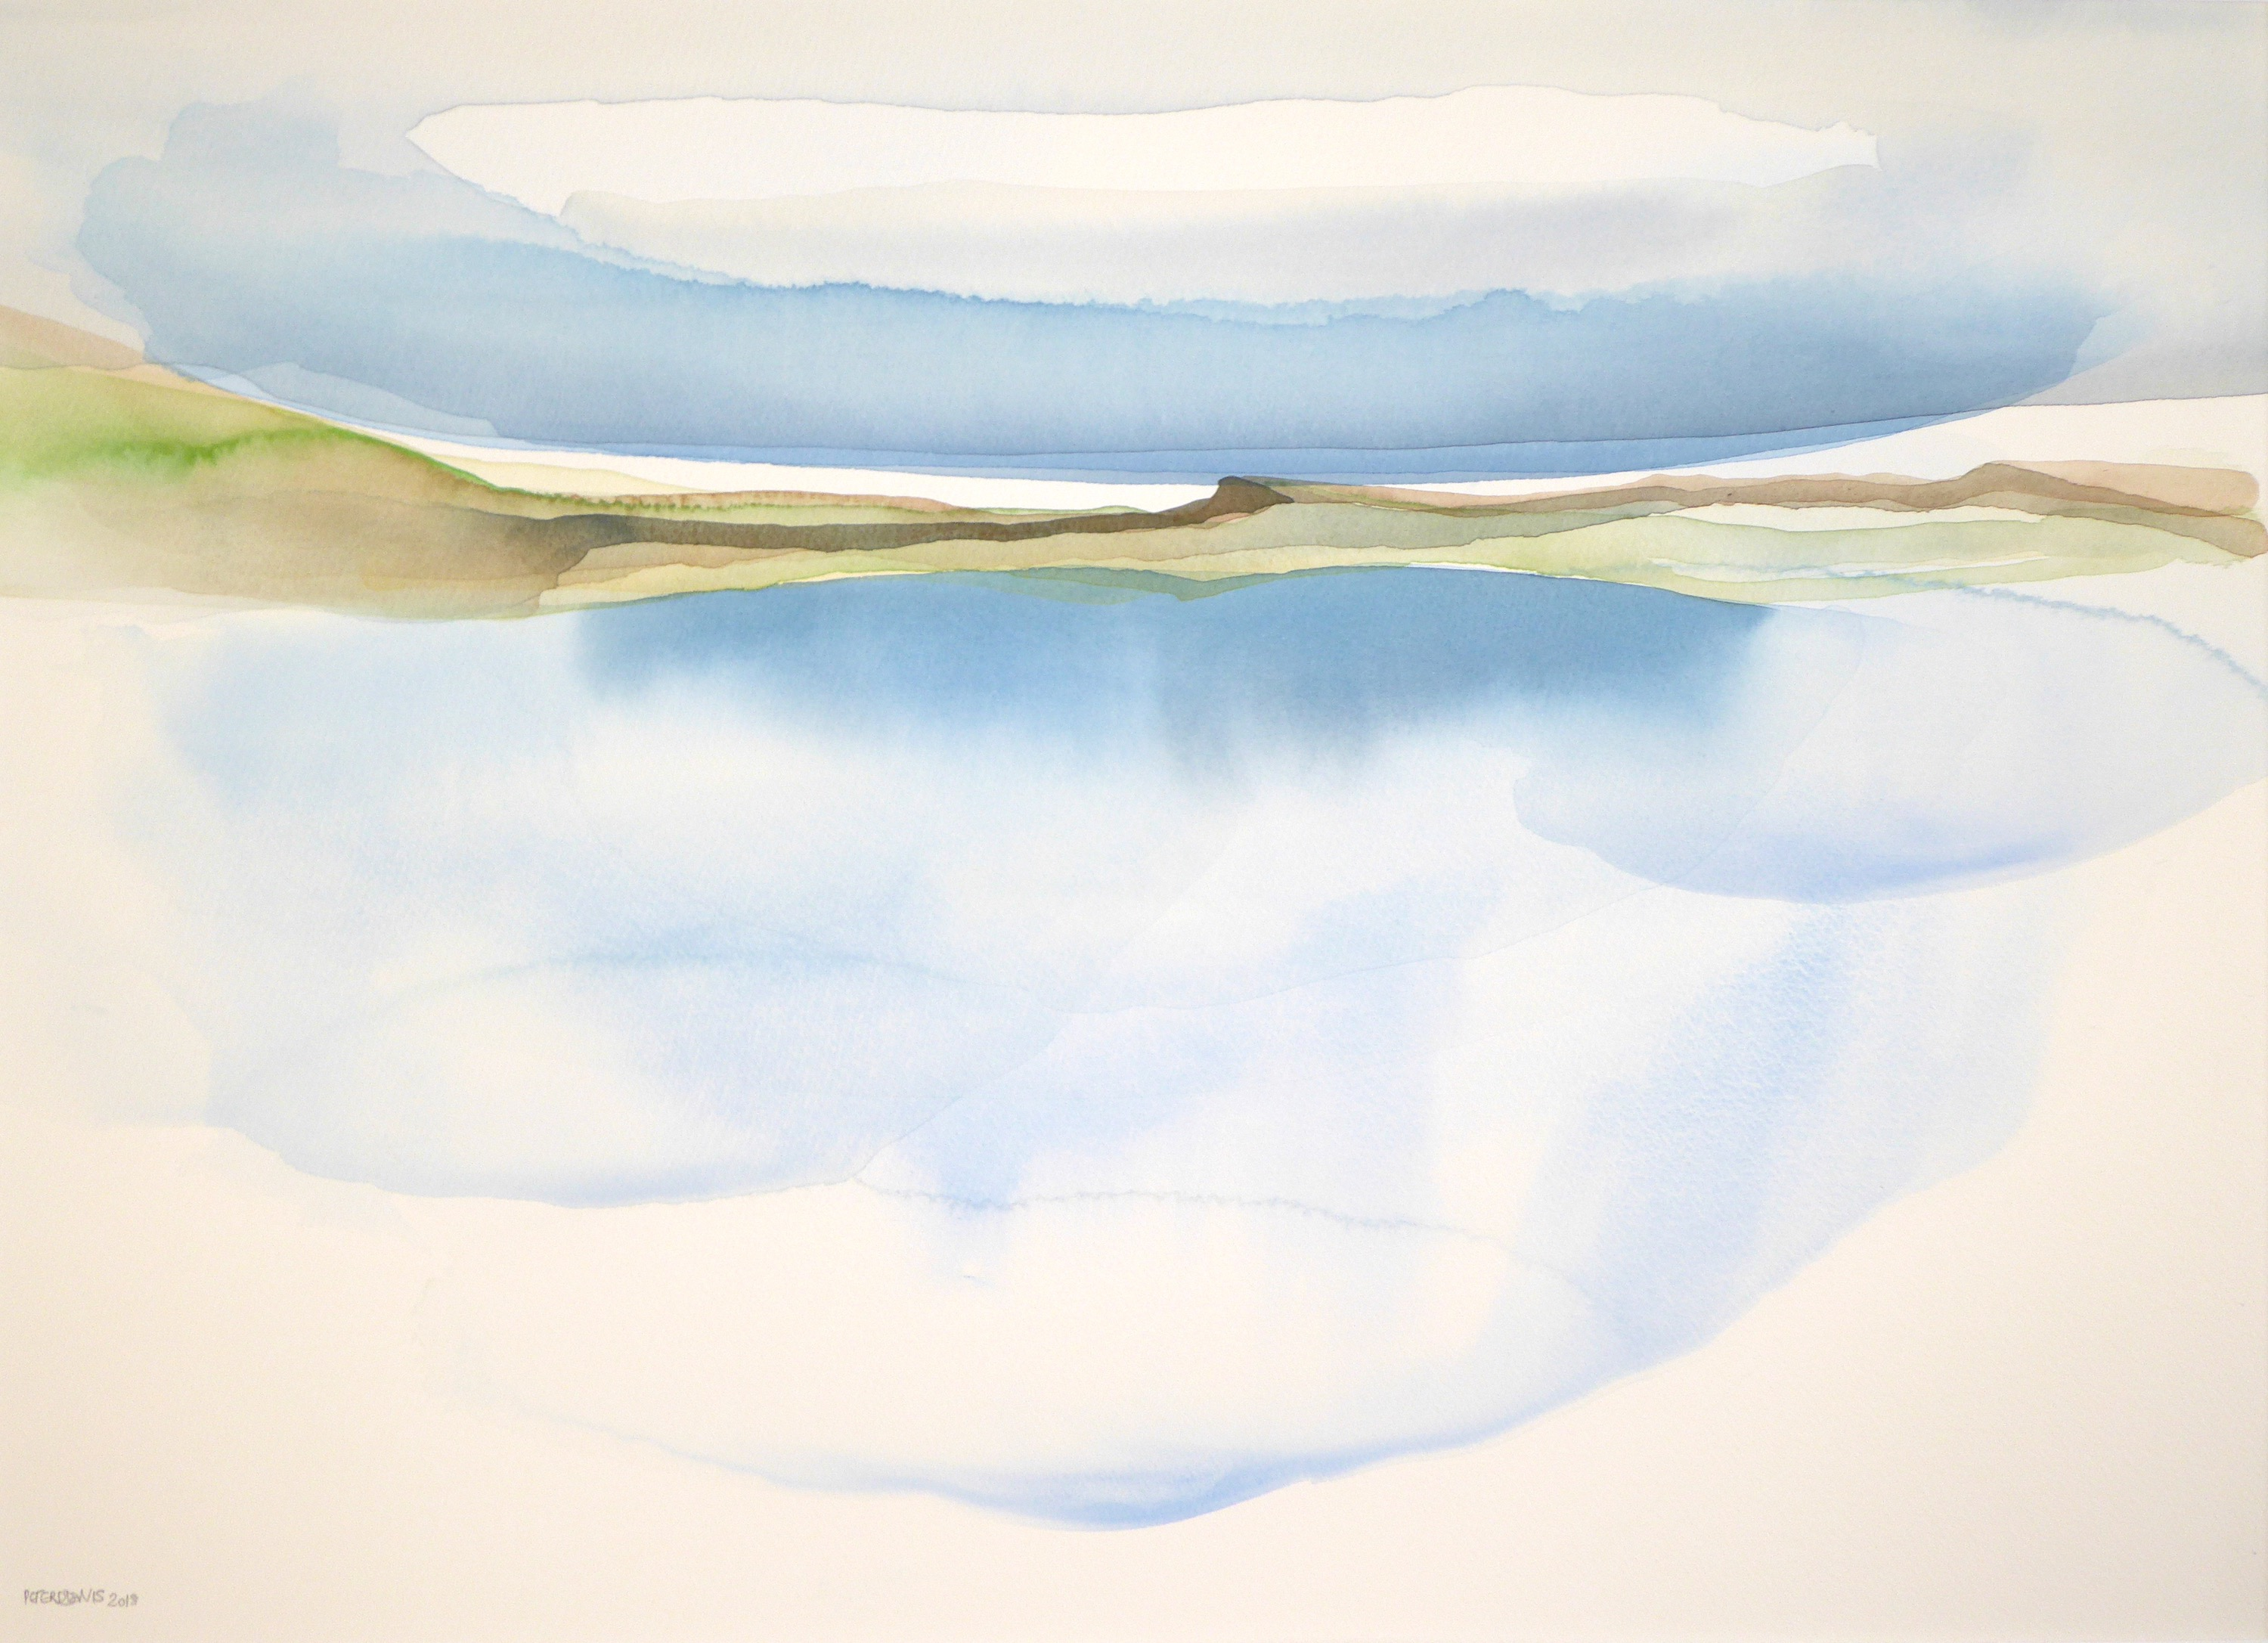 Peter Davis. Loch at Eshaness, Watercolour on paper 2018, (70x50cm)